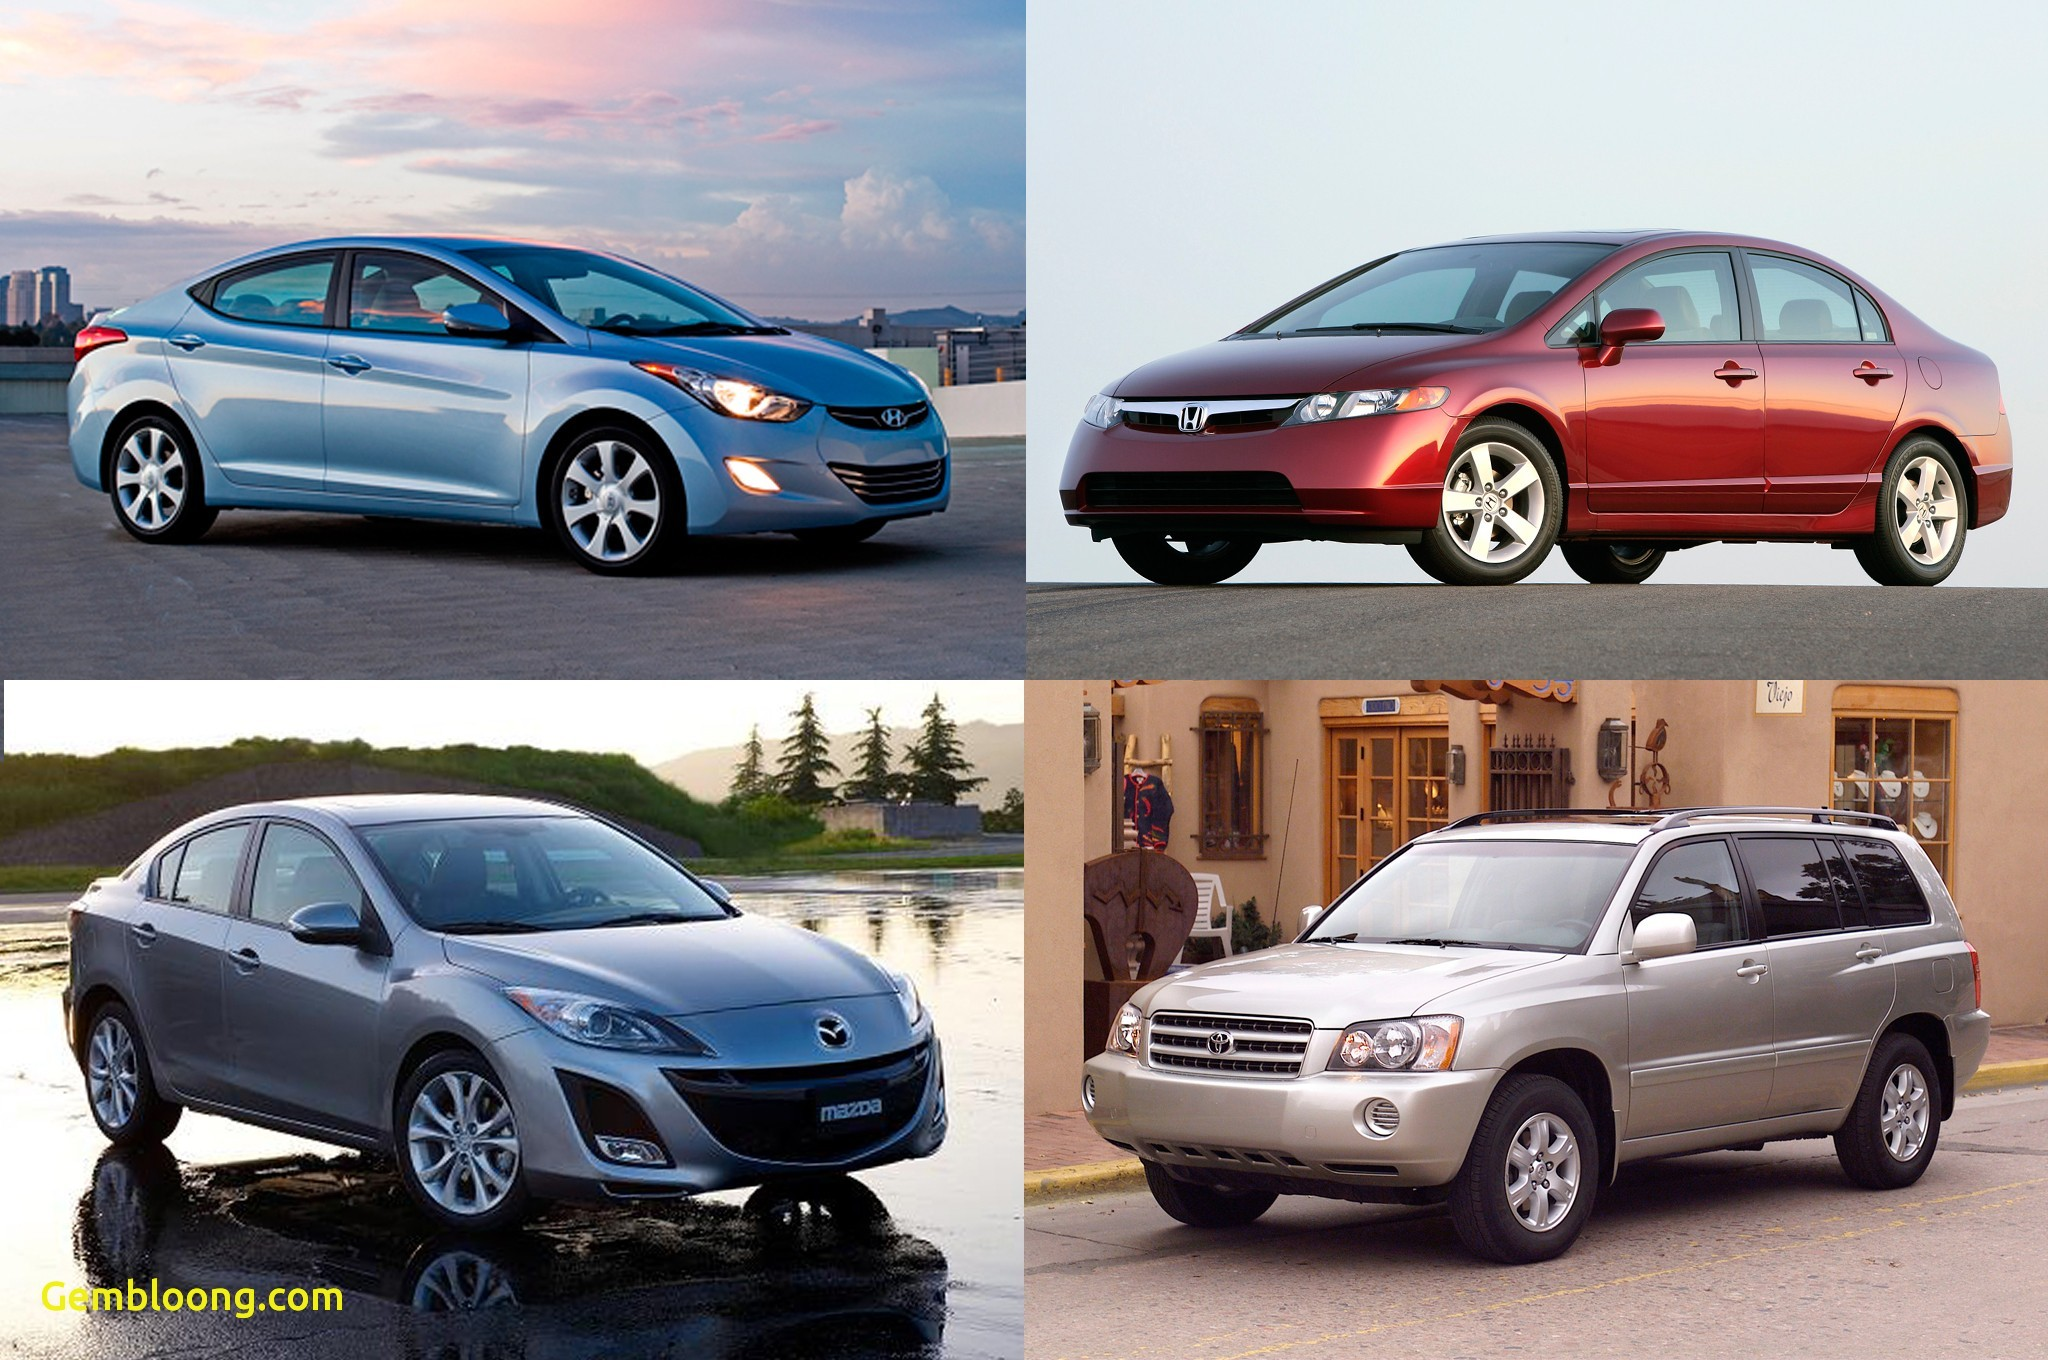 Cars for Sale Near Me by Owner Under 1000 Best Of Elegant Best Used Cars Near Me